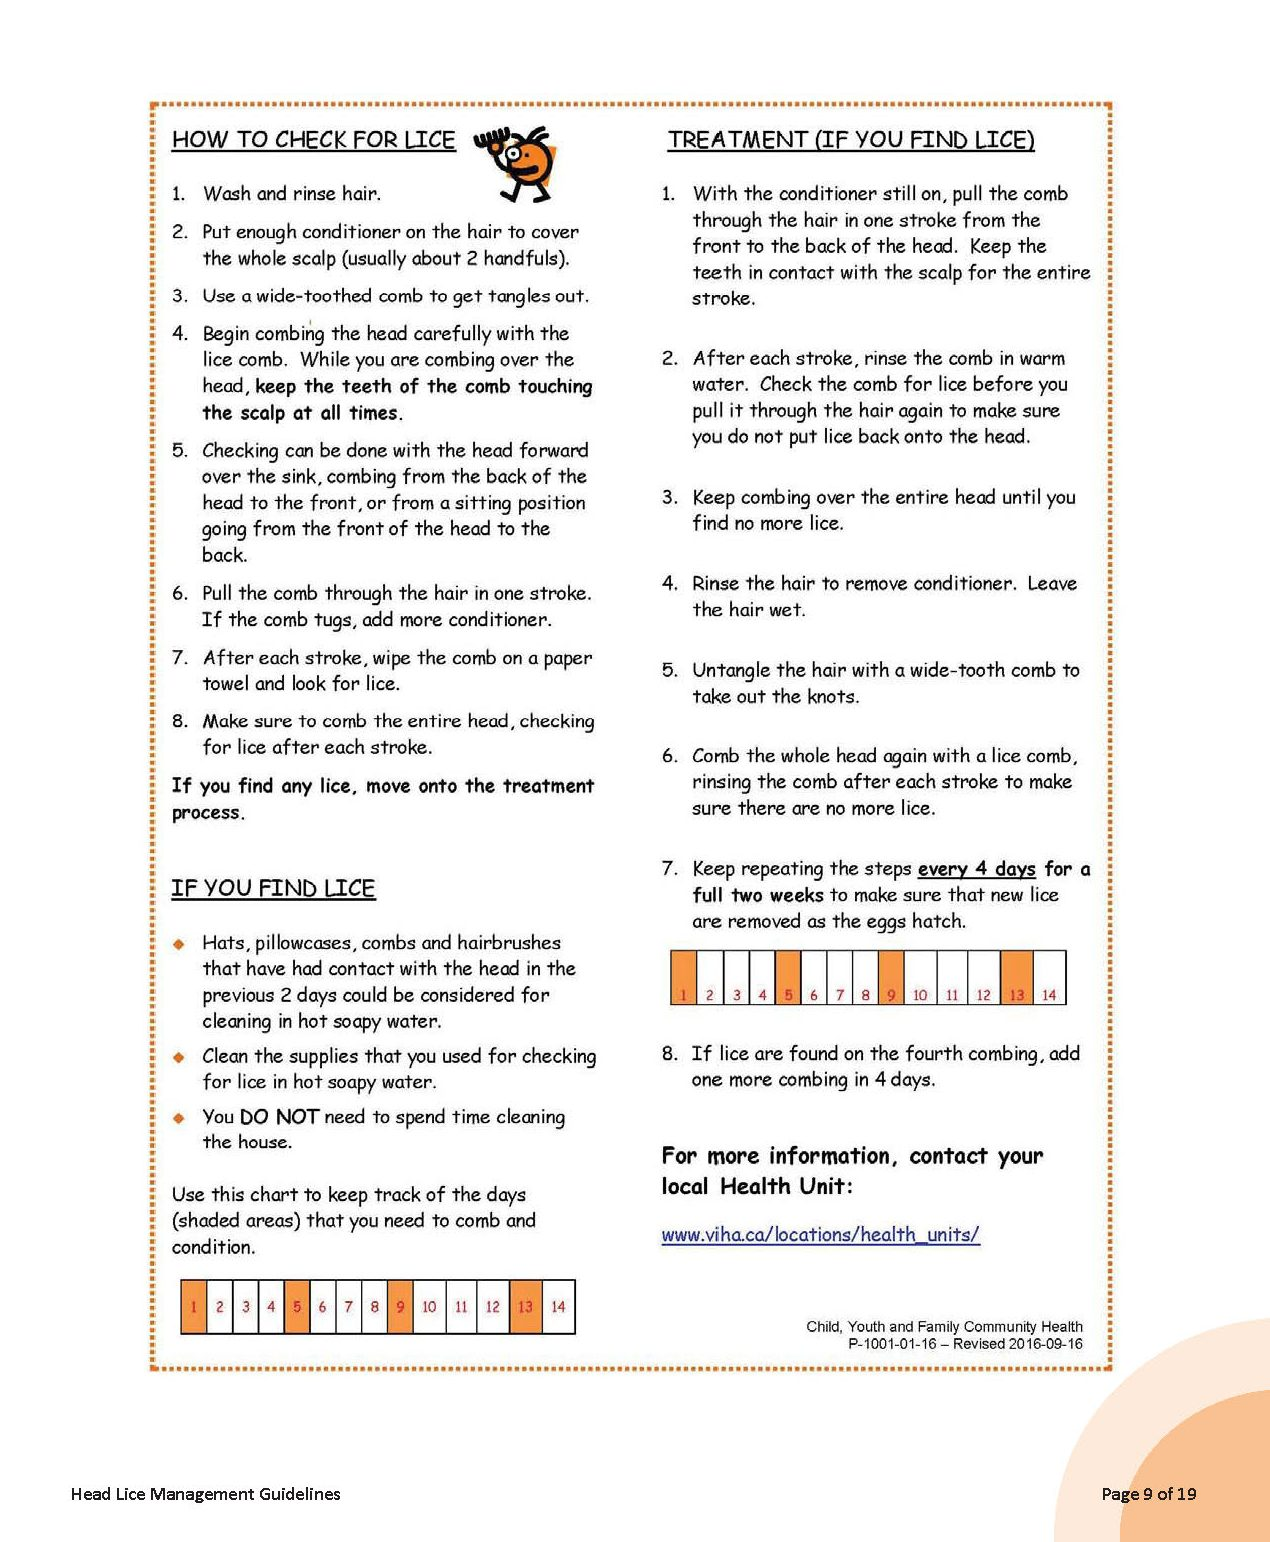 head-lice-management-guidelines-wh-pdf-5_page_2